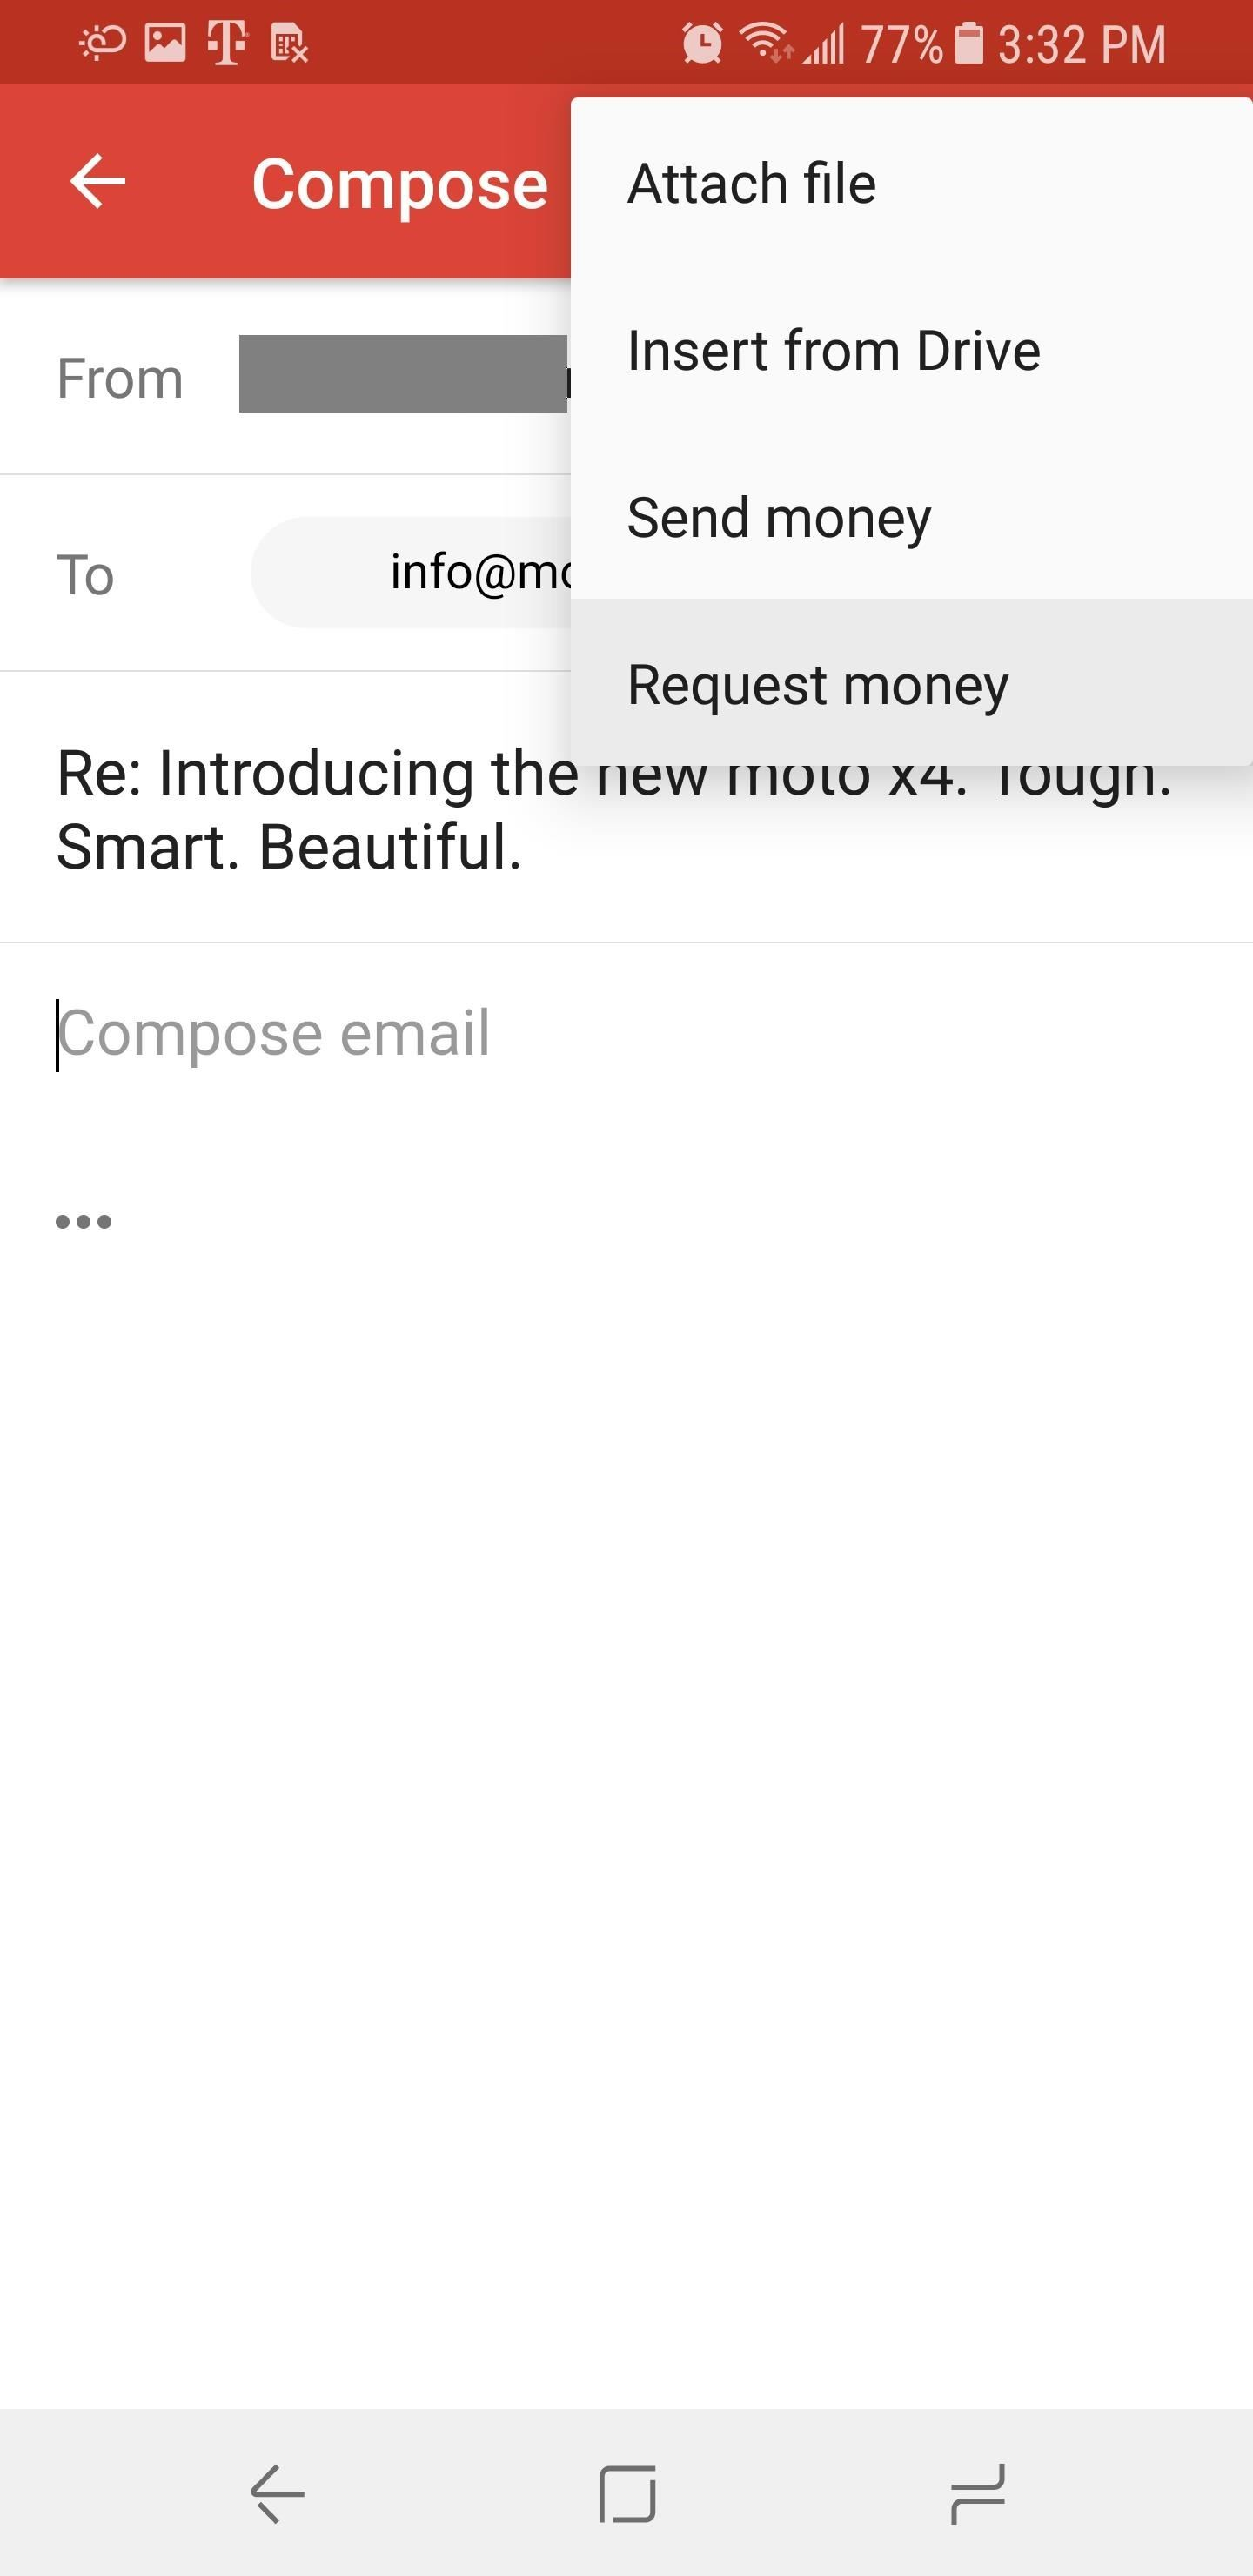 Gmail 101: How to Send & Receive Money with Android's Default Email App